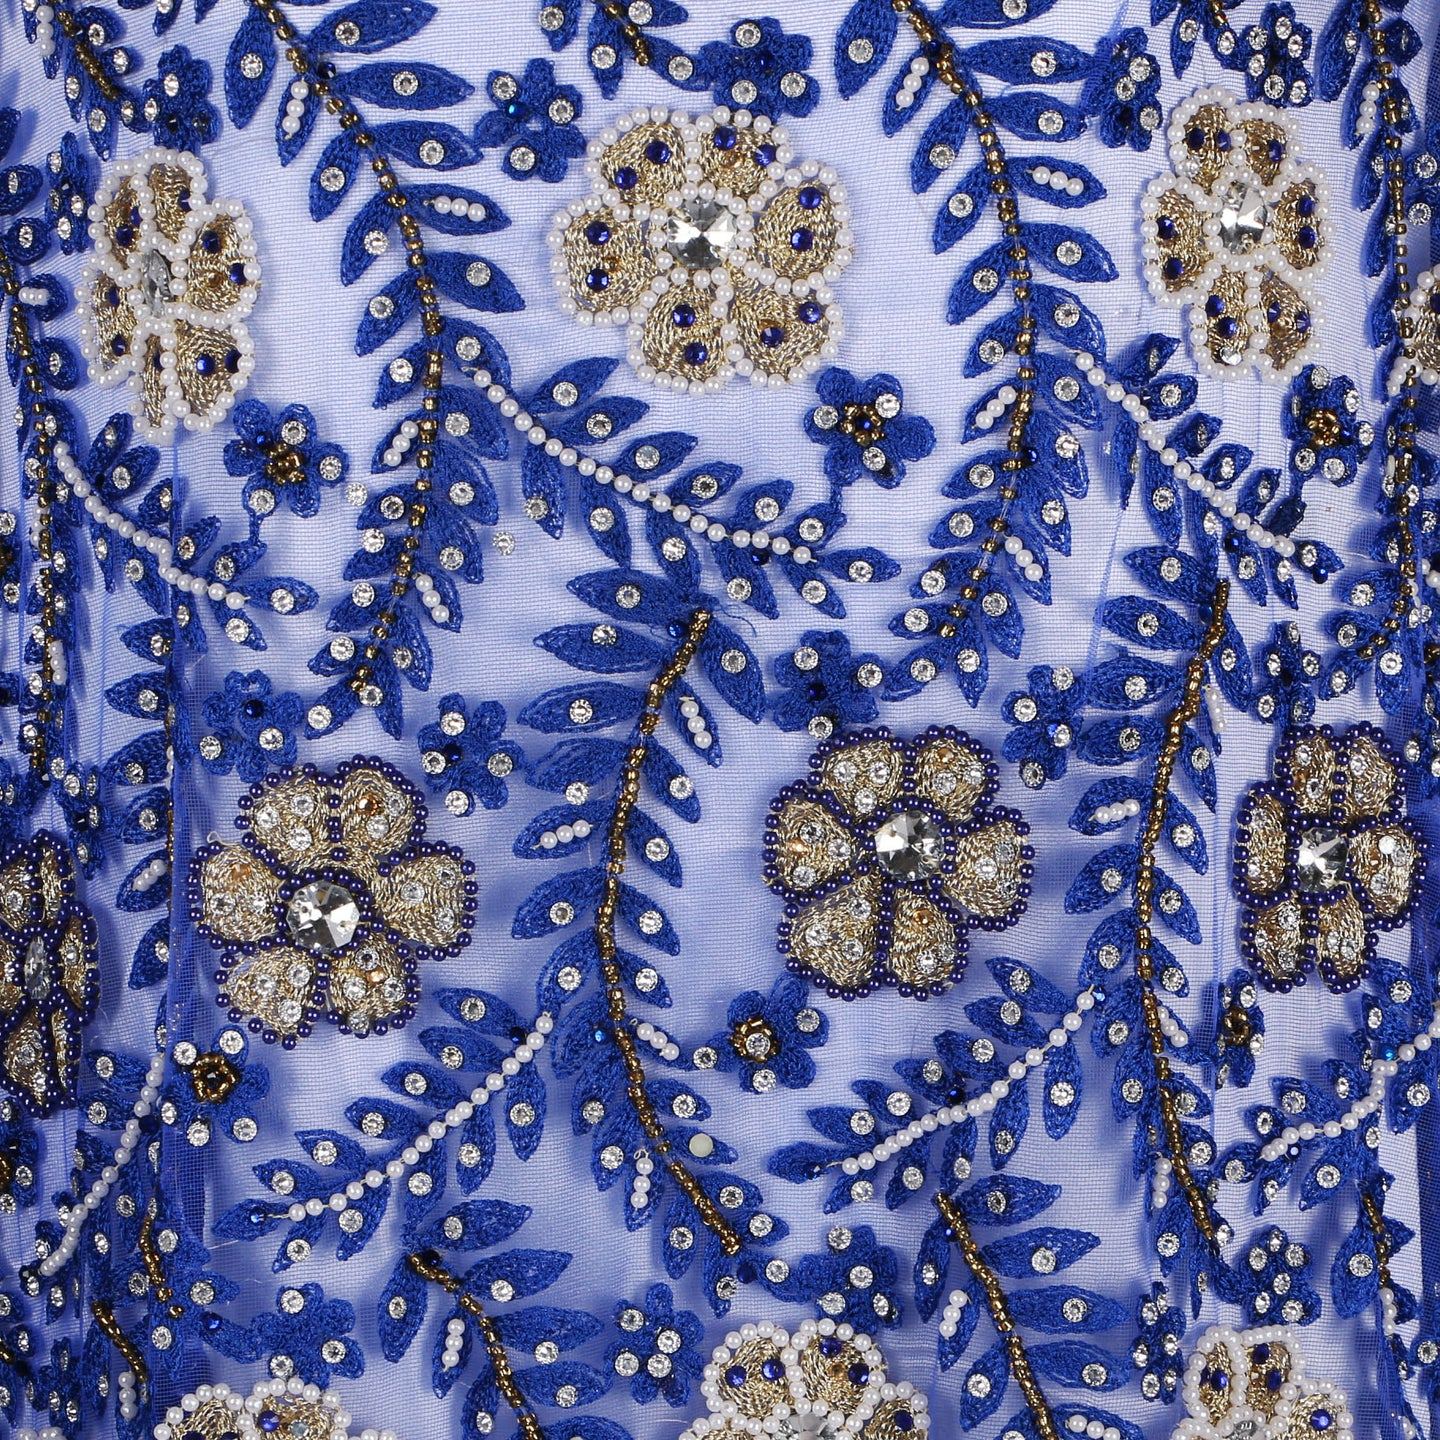 Hand Embroidered Fabric Design # 4054 - Royal Blue - Per Yard